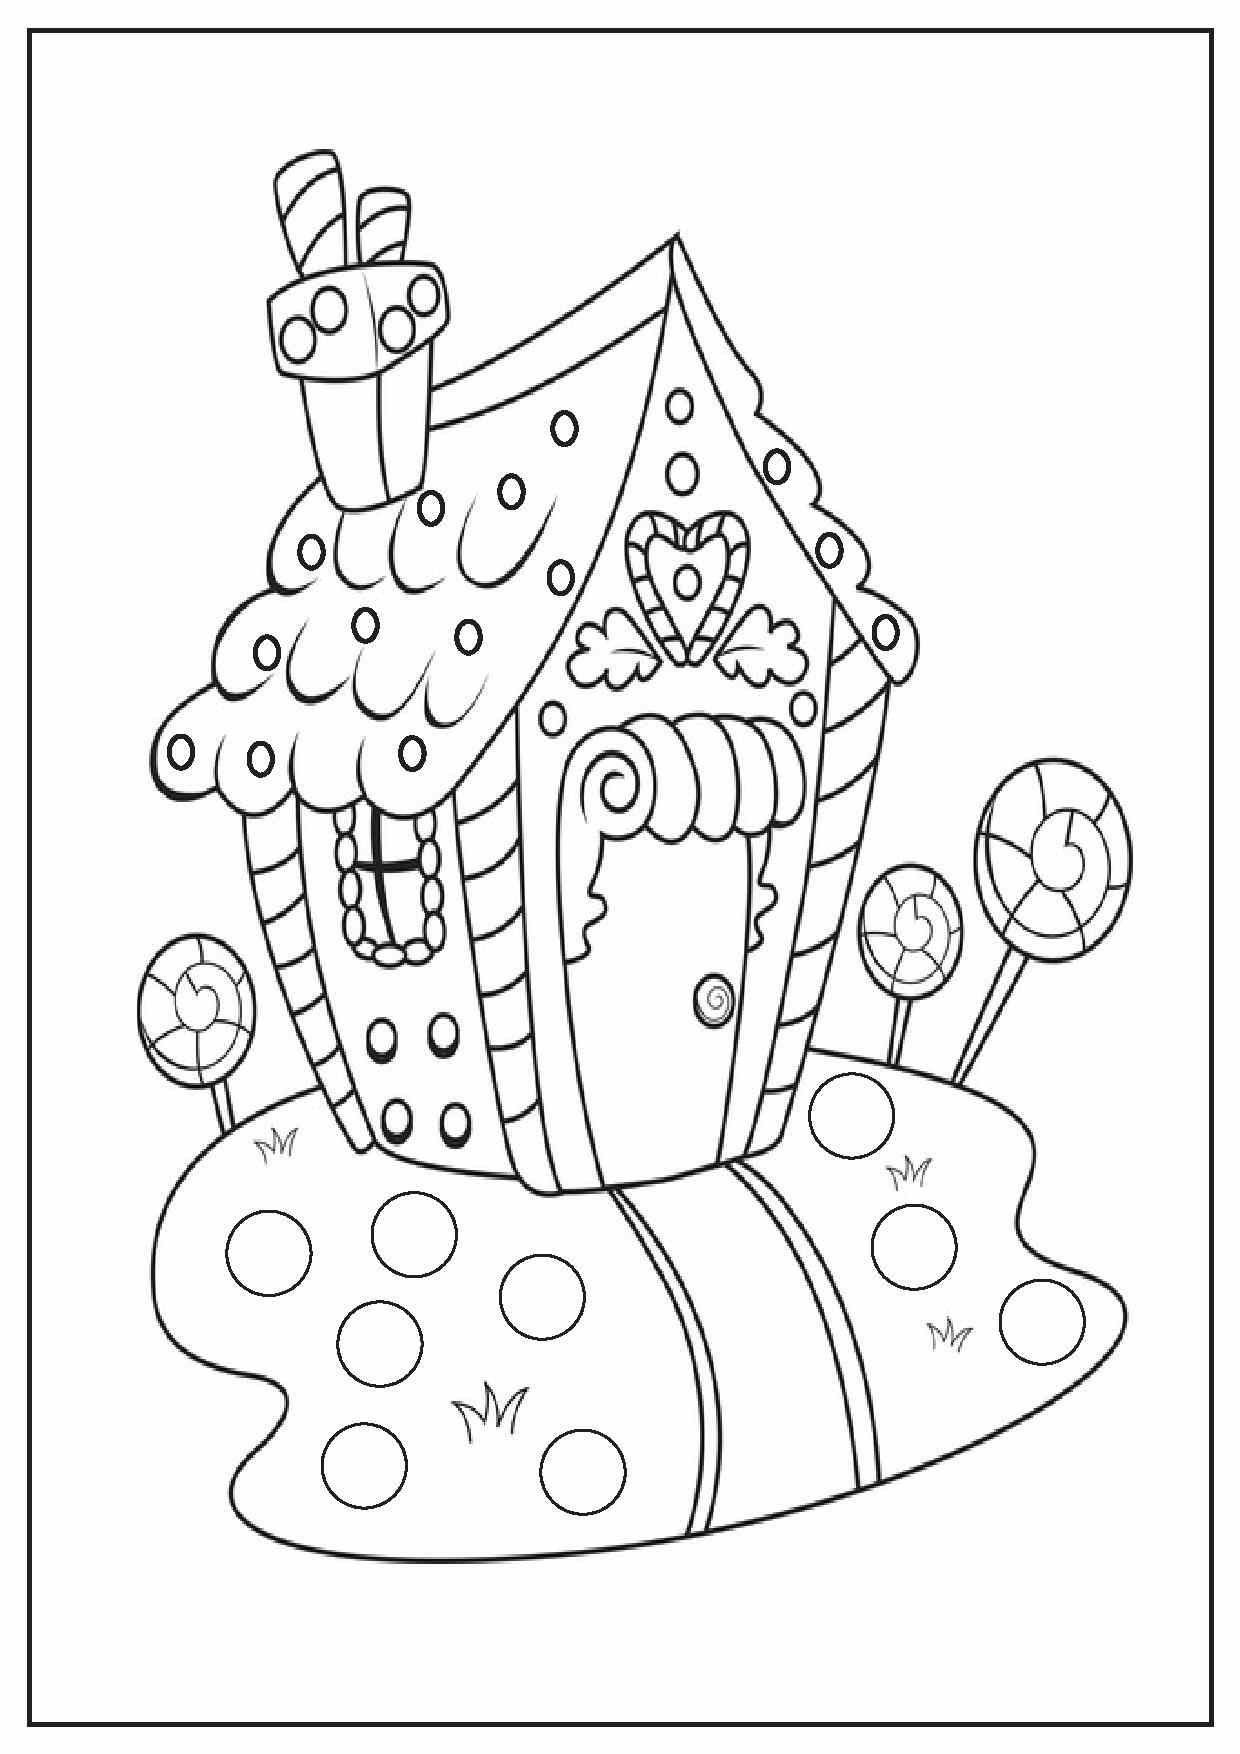 Cool Coloring Pages That You Can Print - Coloring Home